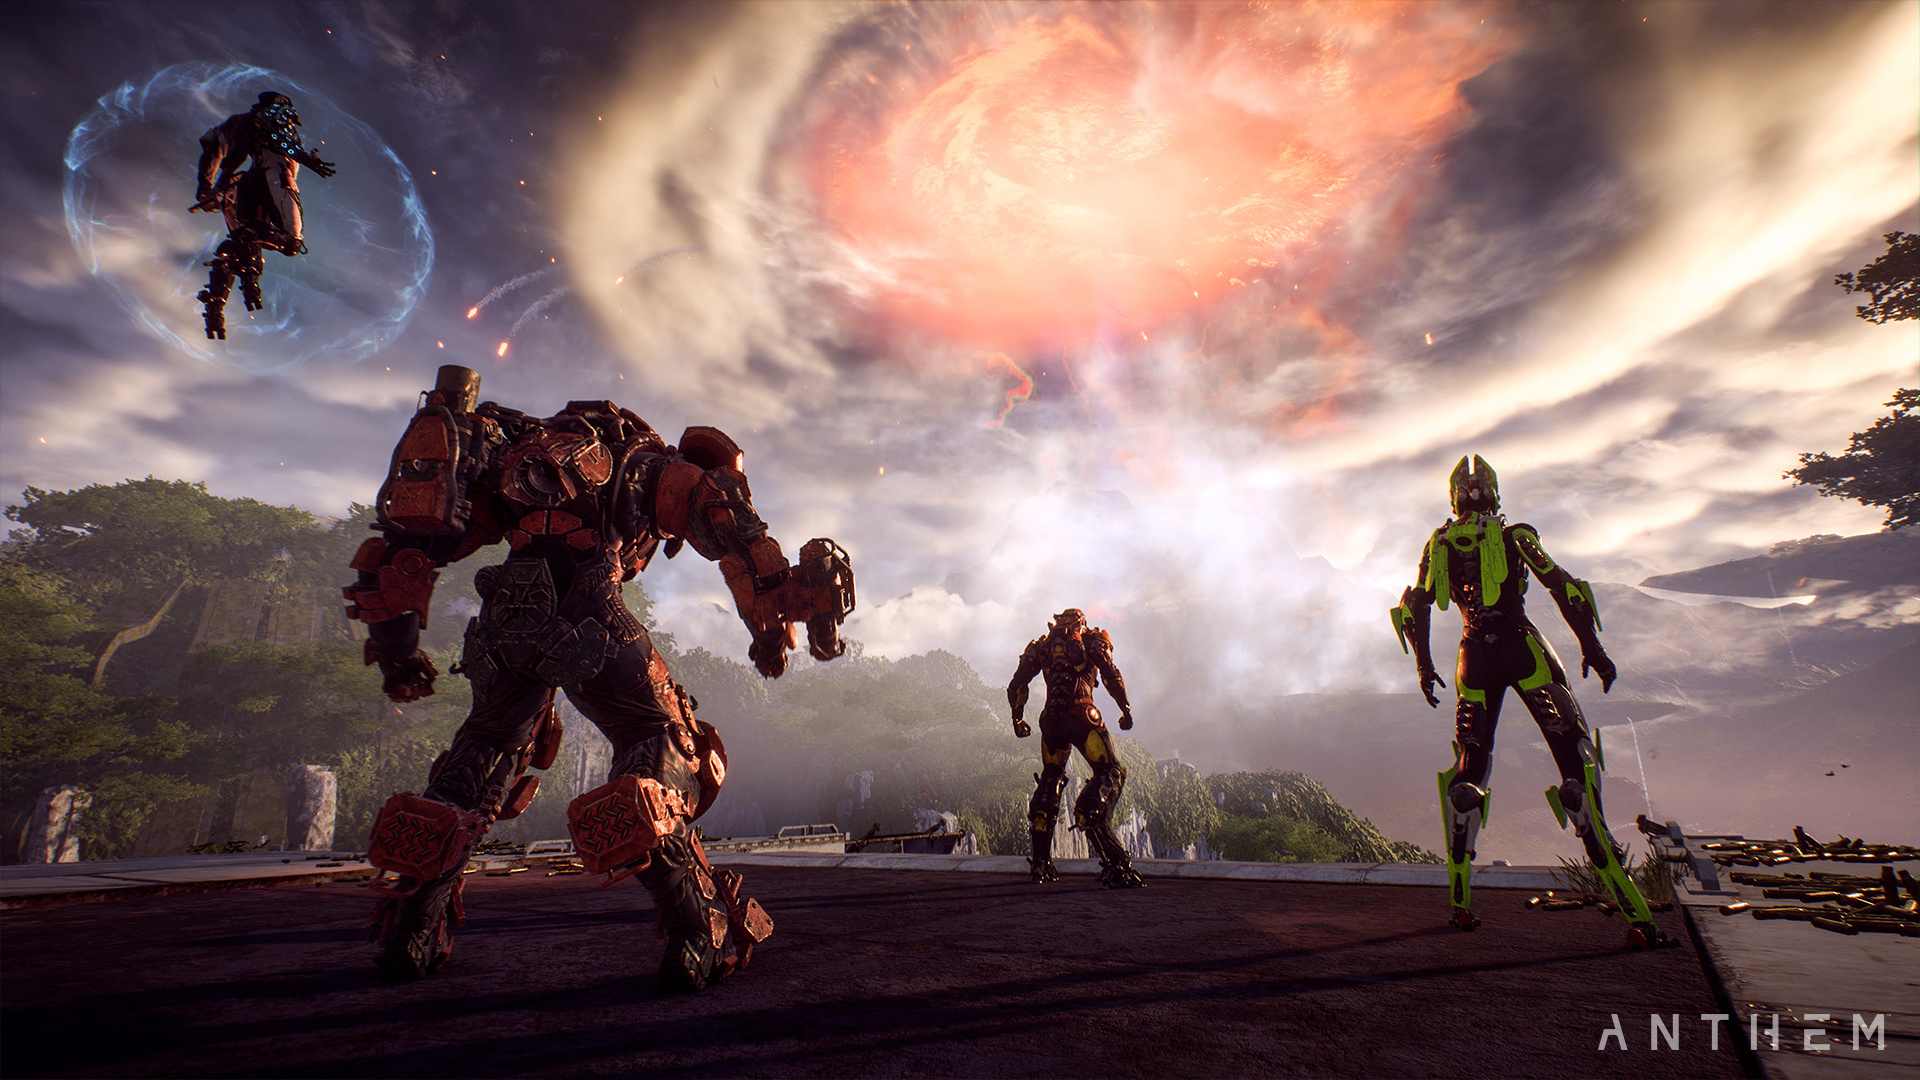 Anthem: Bioware Breaks the Silence, but Postpones the Cataclysm Event